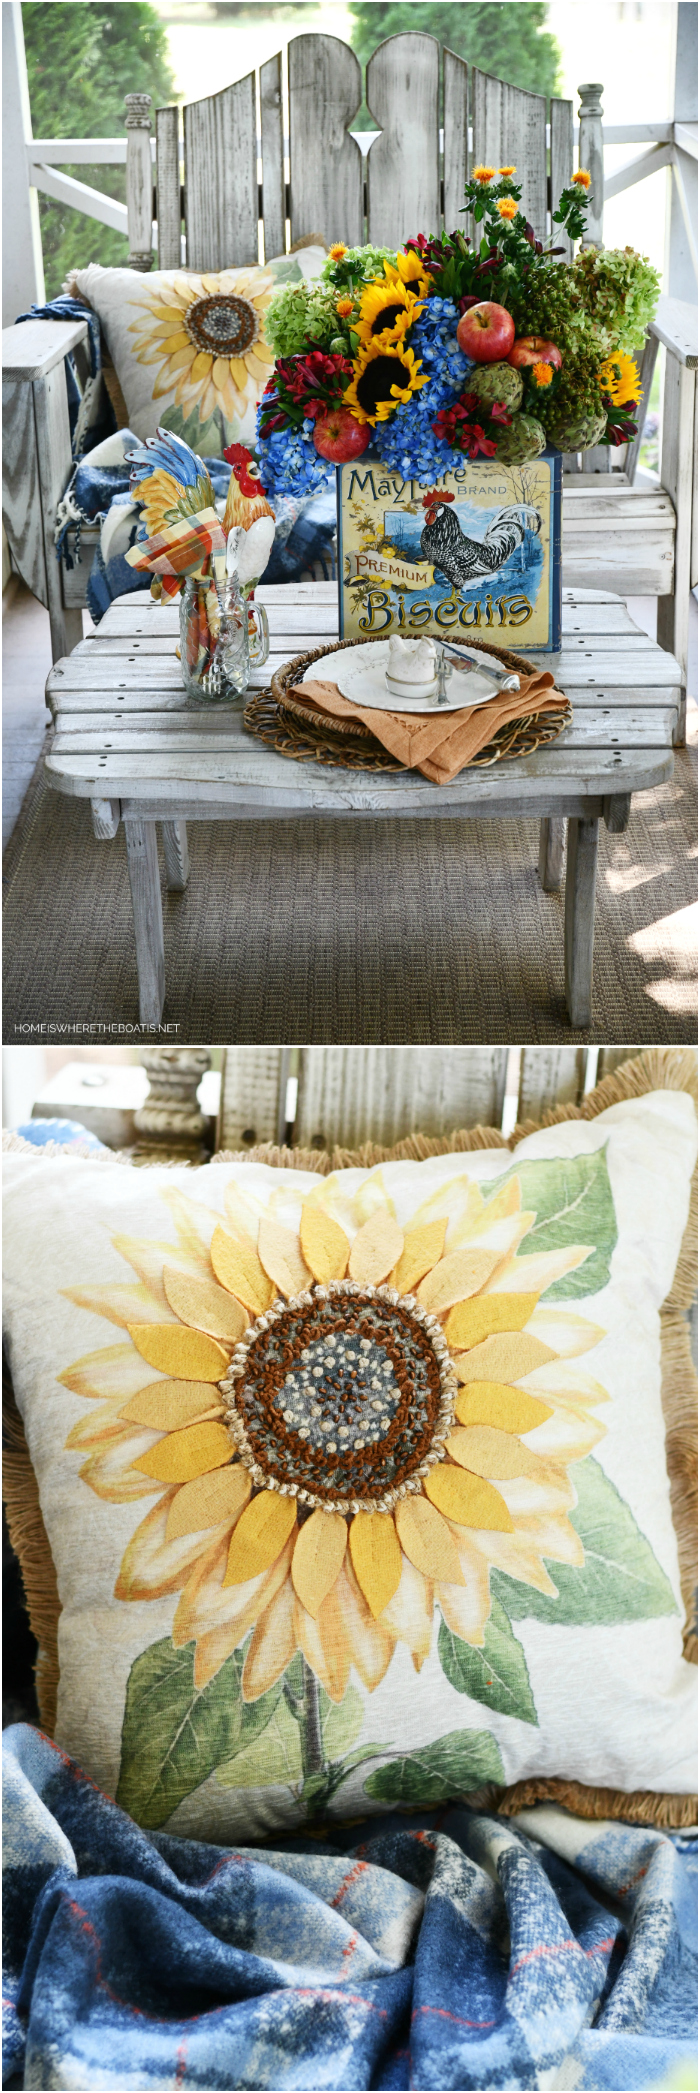 A Sunny Transition Flower Arrangement + Crowing with Delight   ©homeiswheretheboatis.net #hydrangeas #sunflowers #rooster